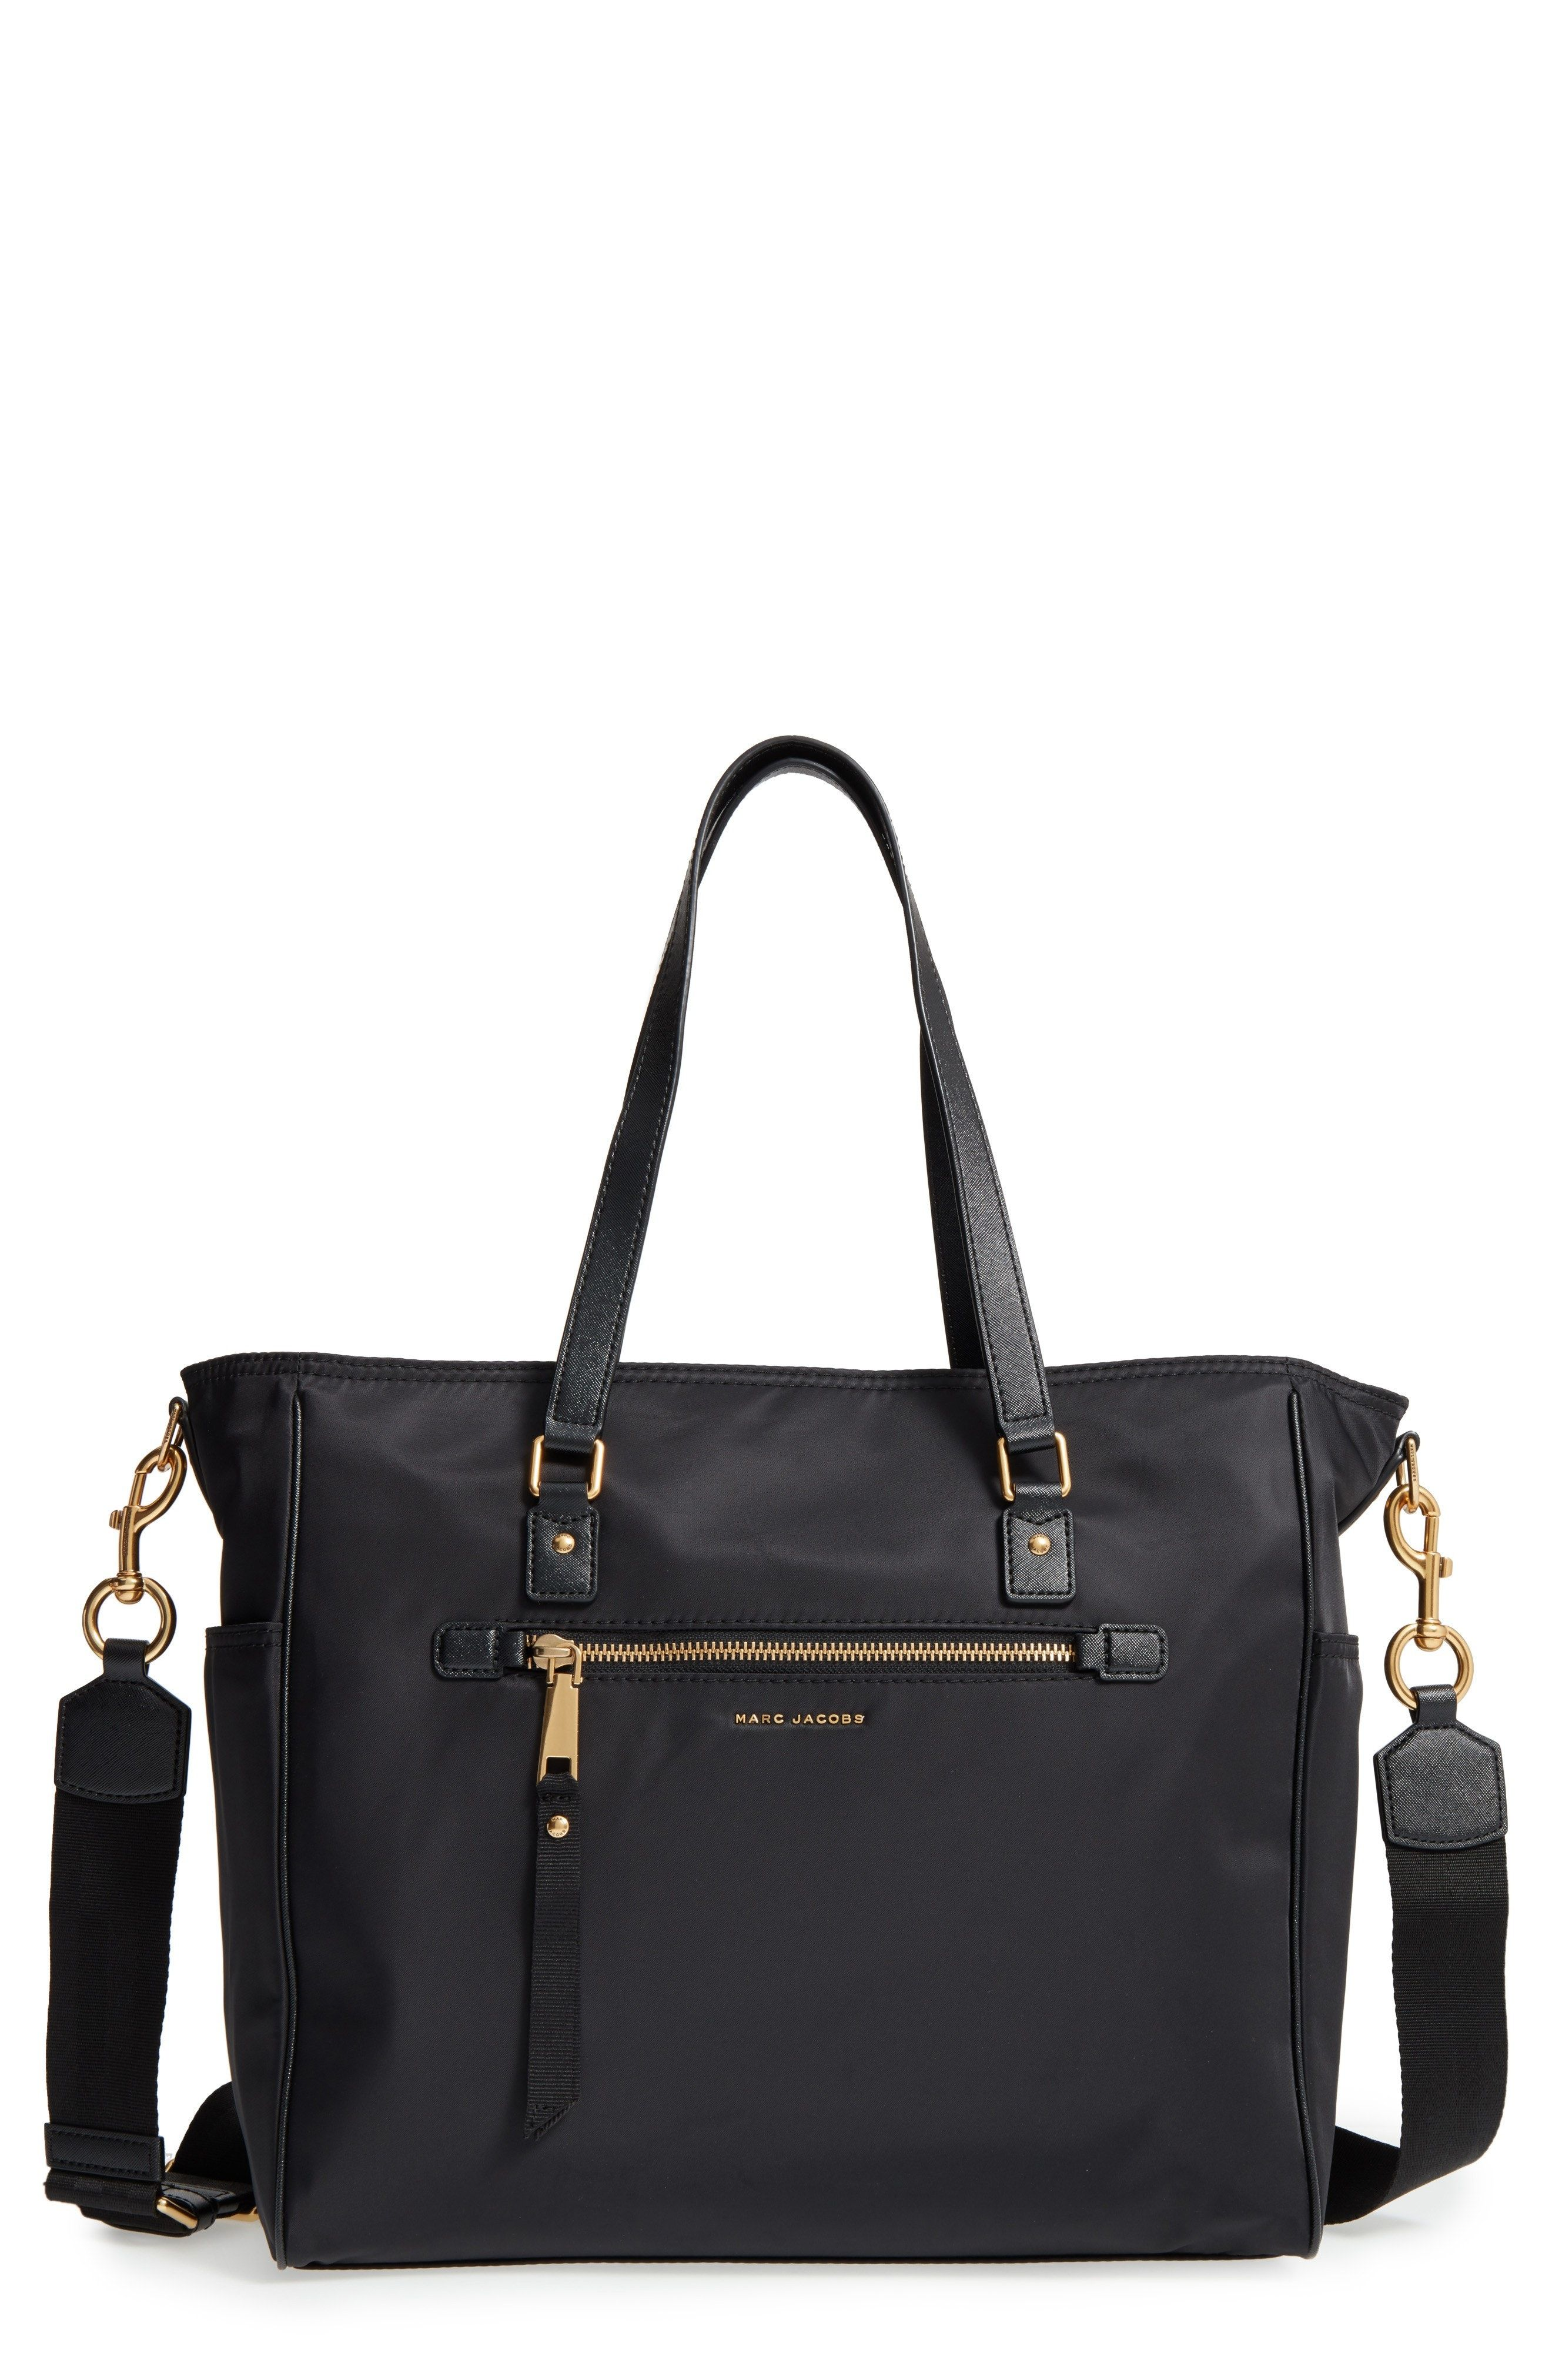 Baby Bags Online New Marc Jacobs Trooper Nylon Baby Bag Fashion Online 325